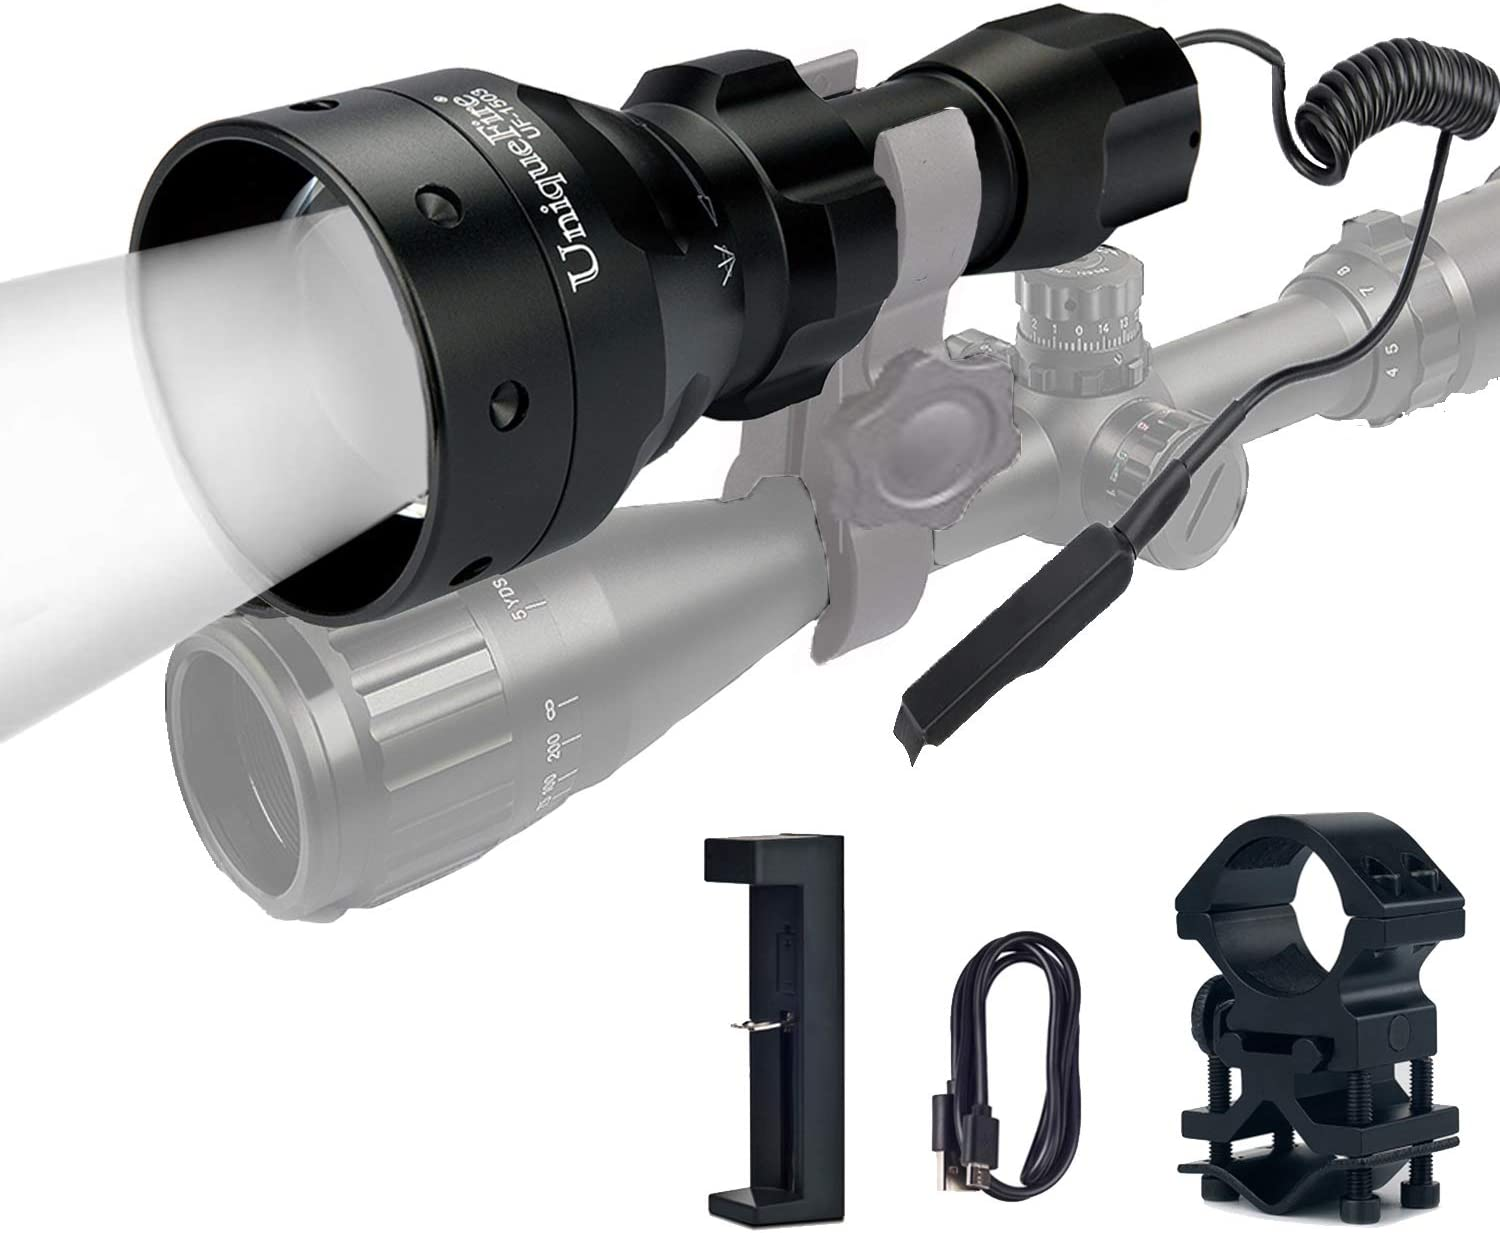 Zoom T50 IR 850NM LED Flashlight Hunting Focus Zoomable Light Laser Night Vision